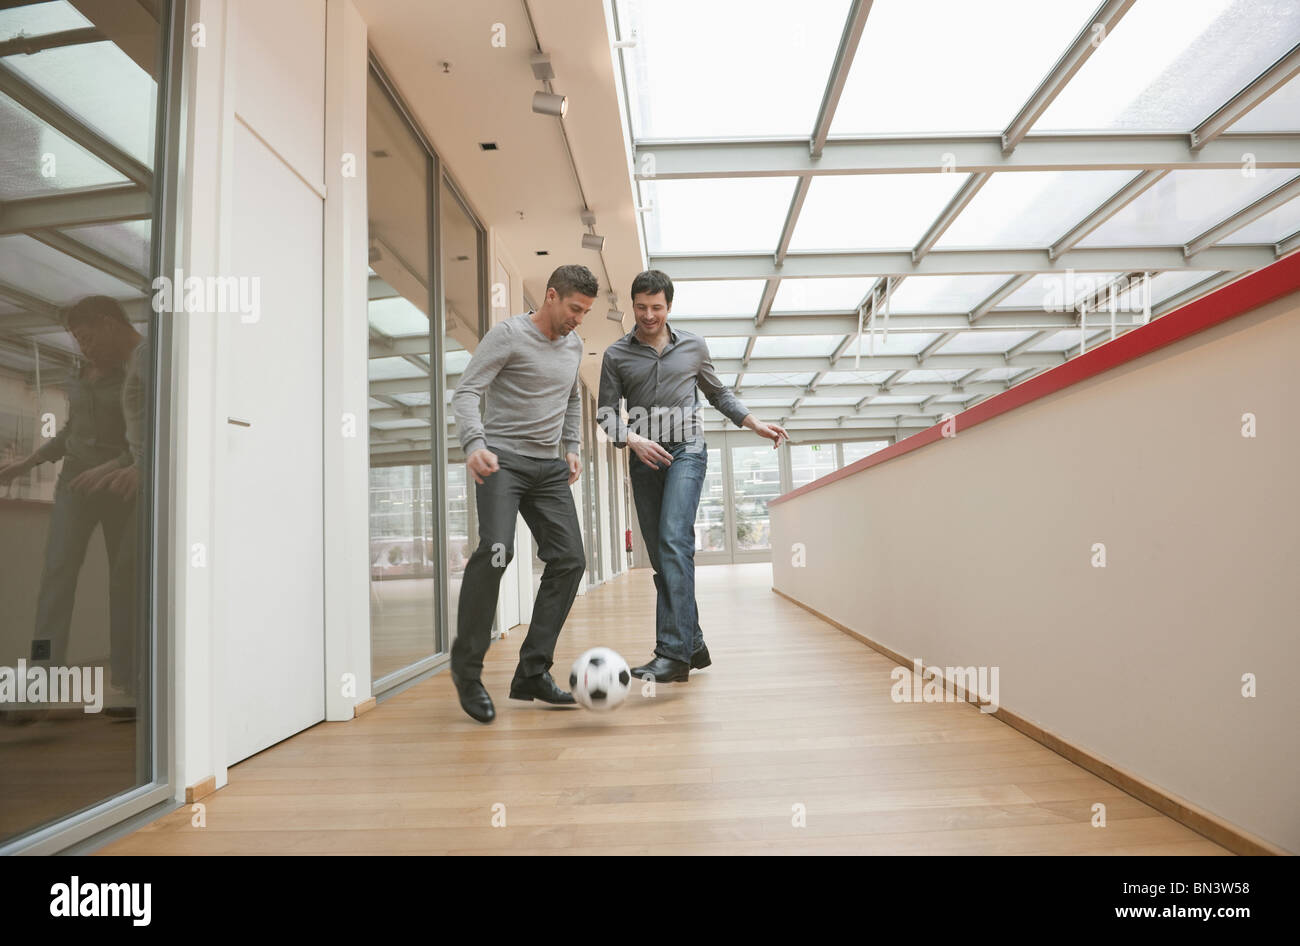 two business men playing soccer in office building